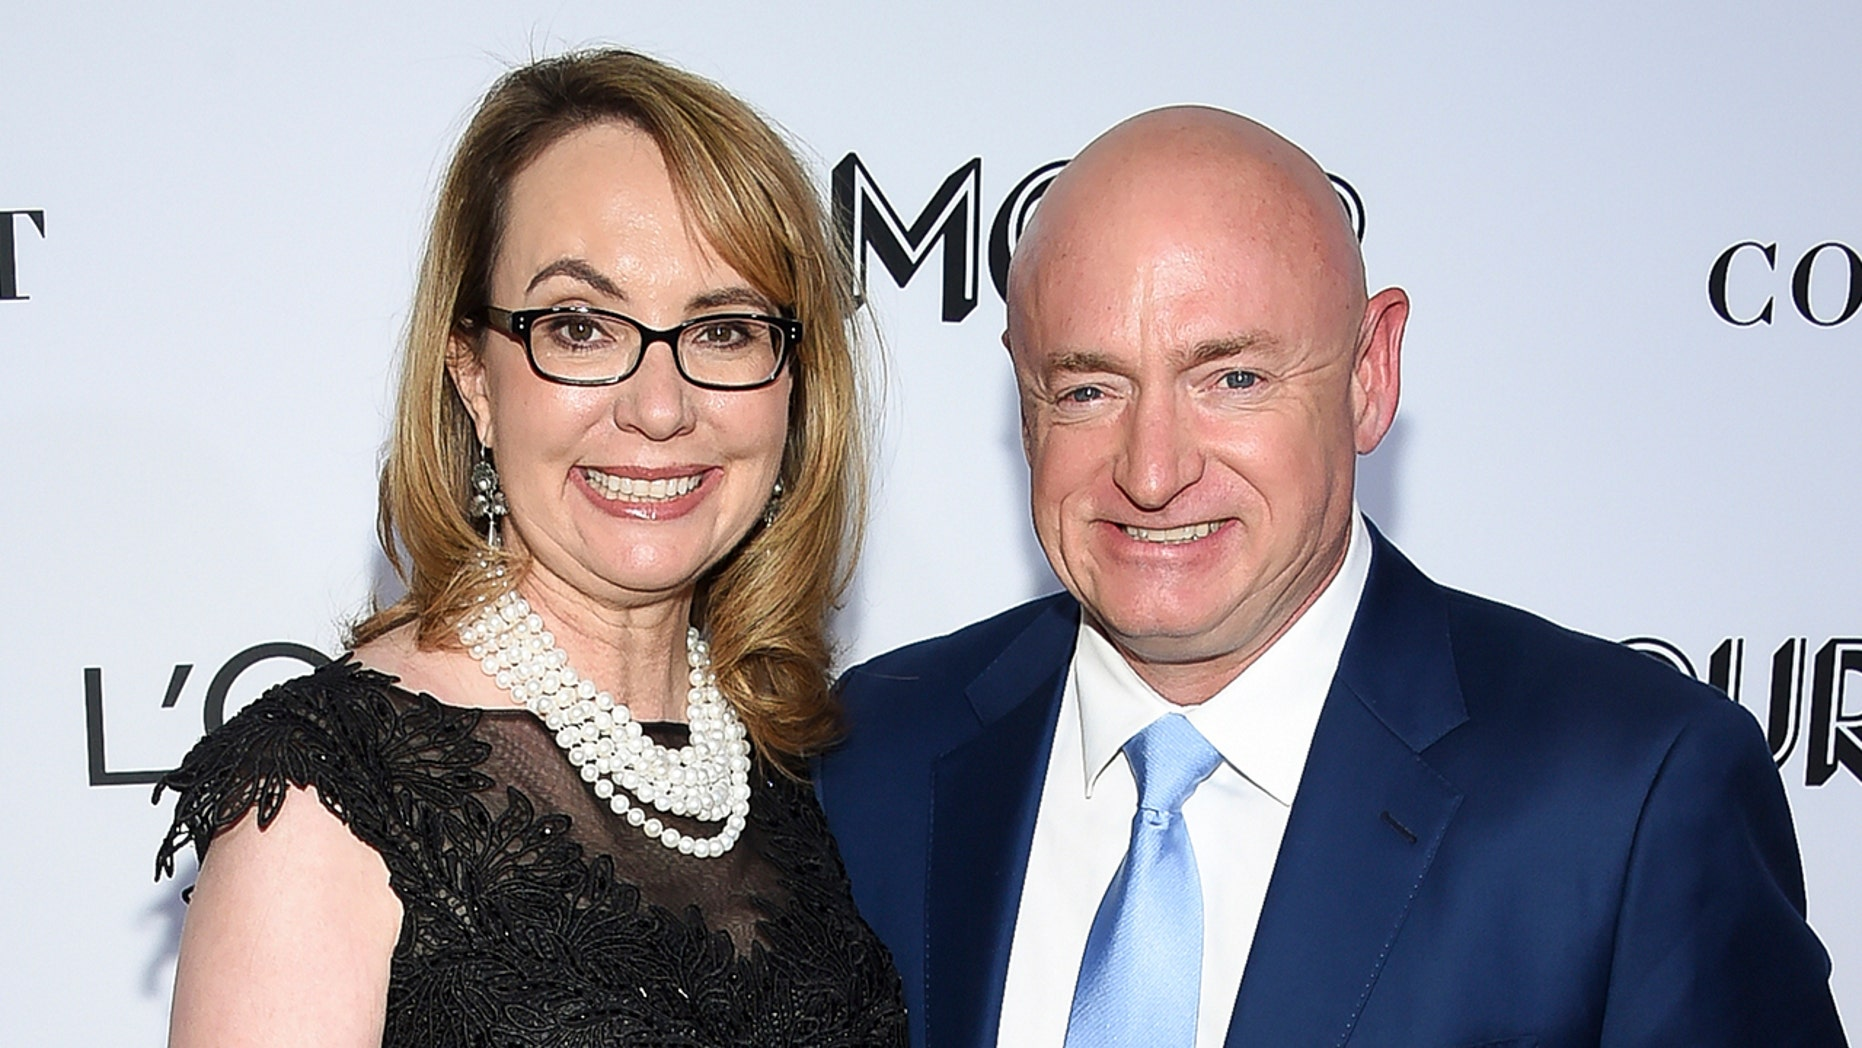 Mark Kelly announces bid for John McCain's Senate seat